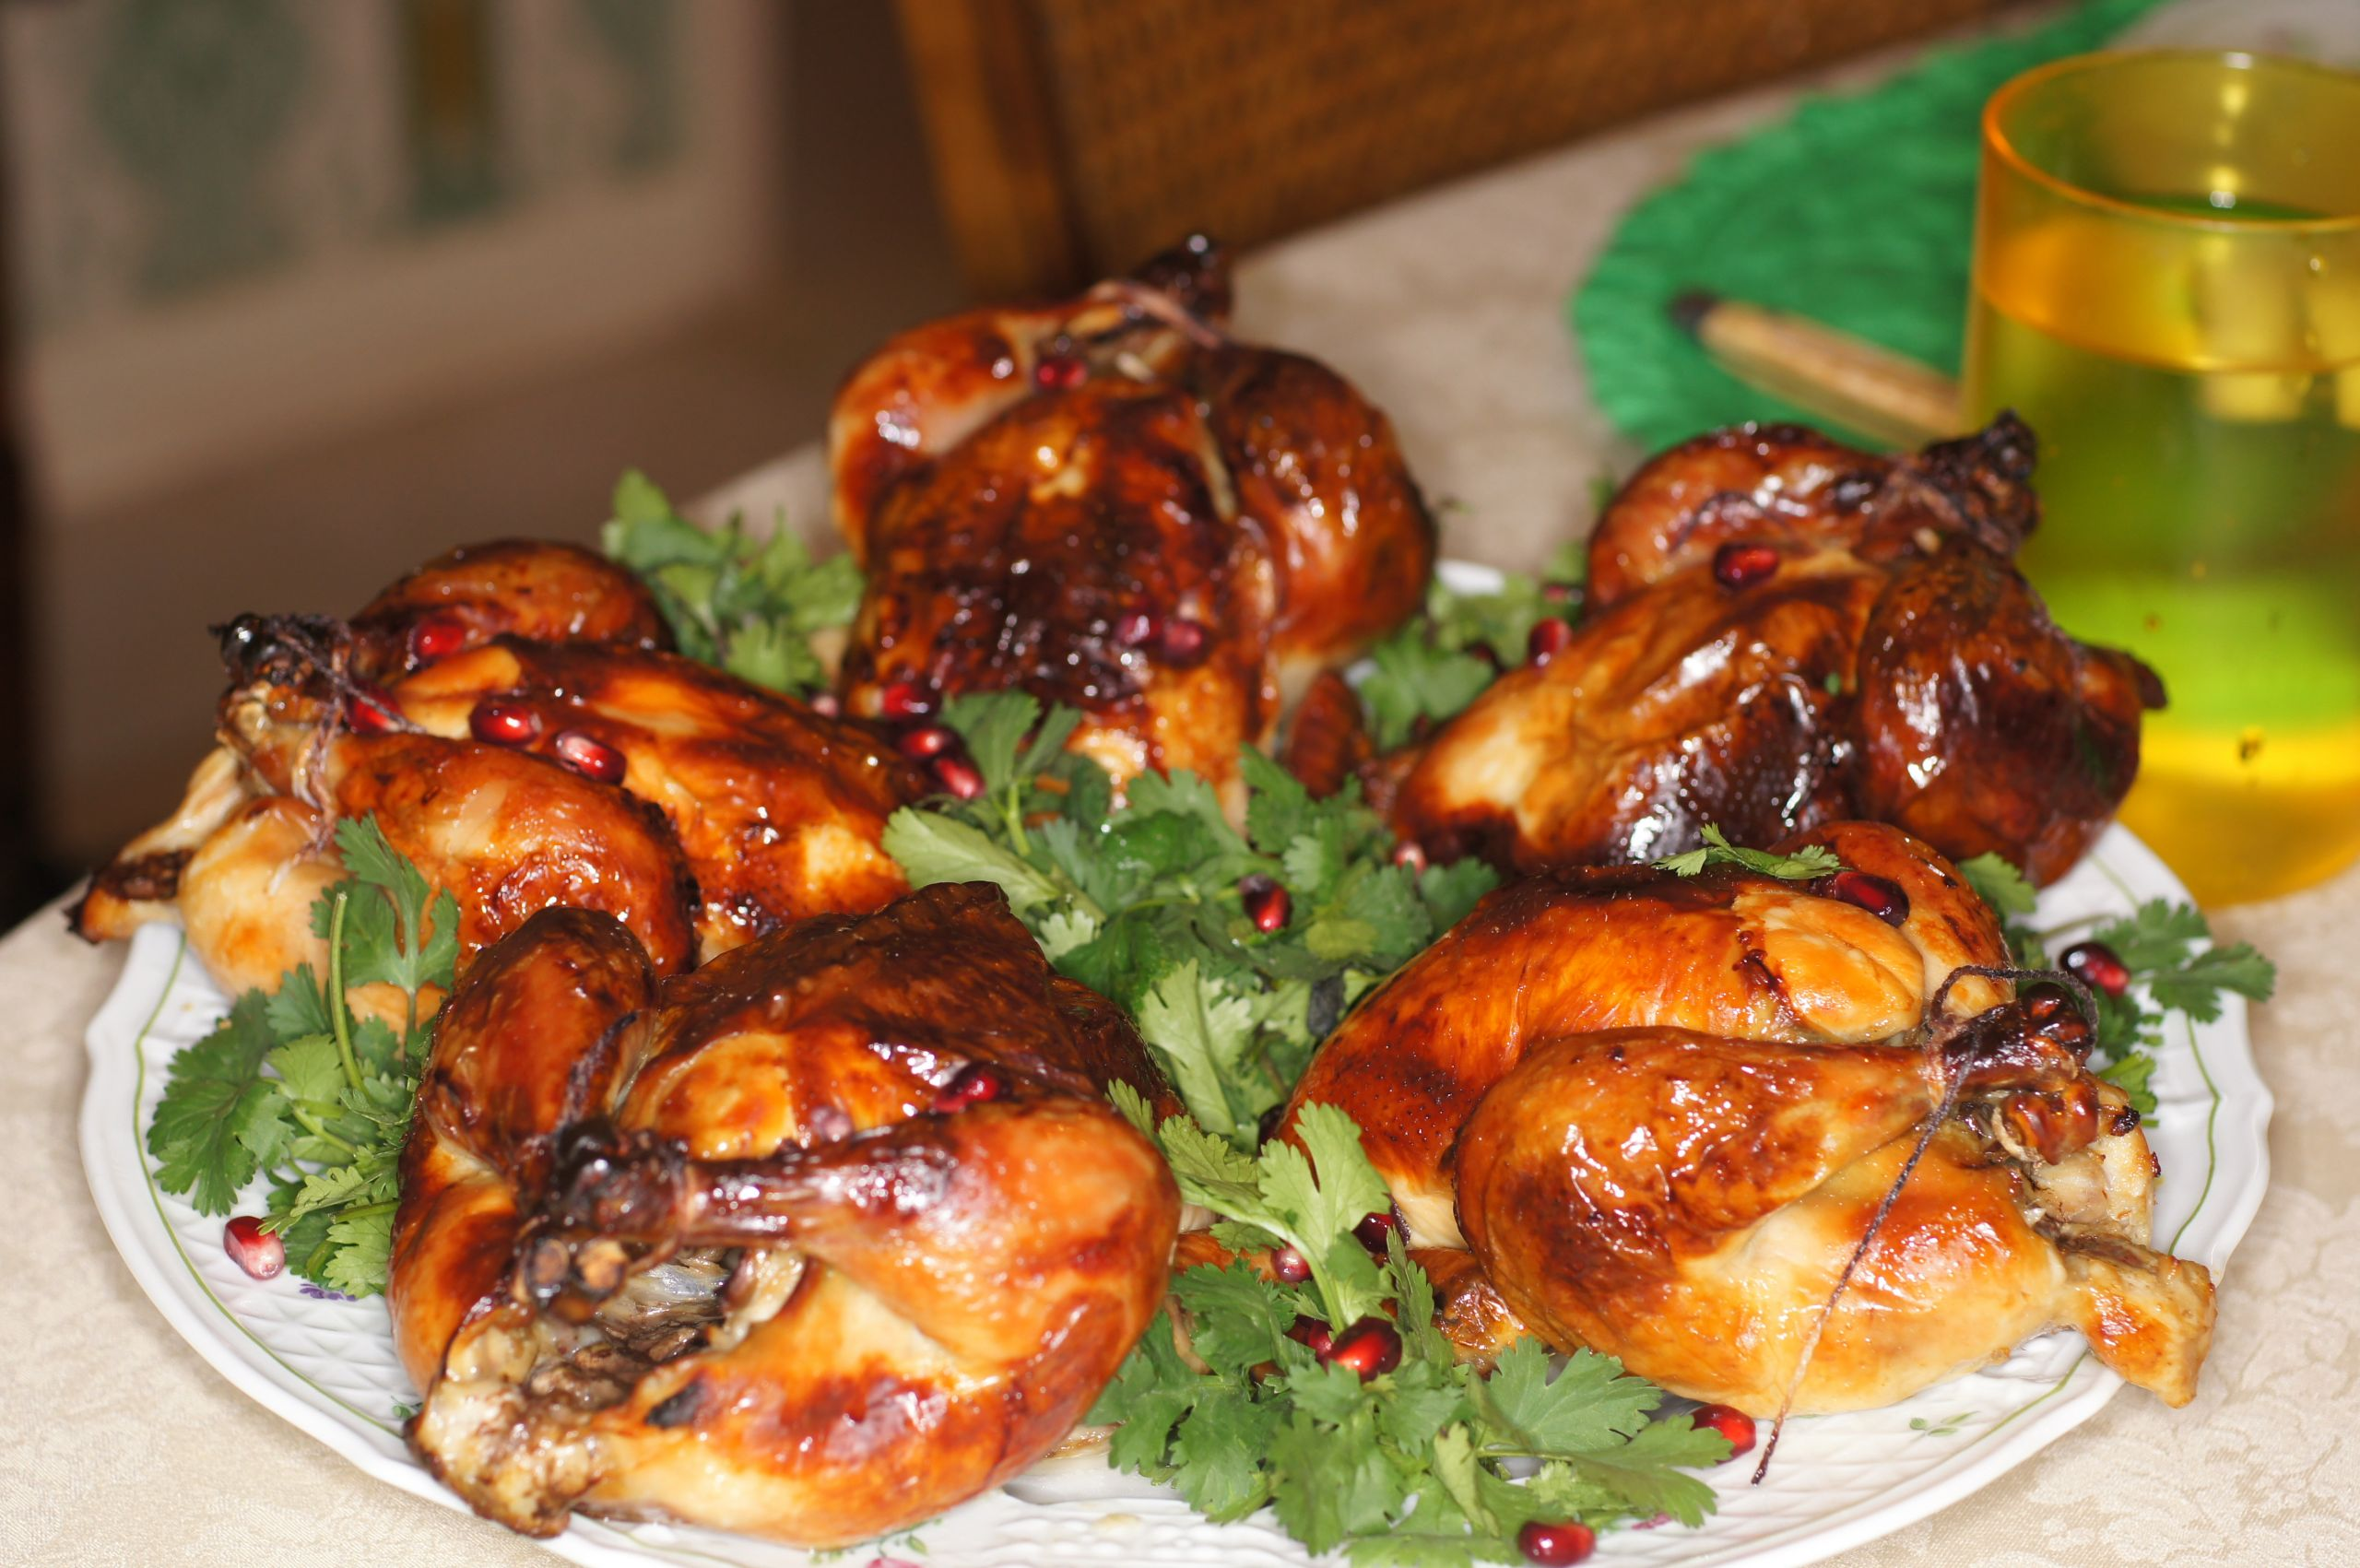 Recipe Cornish Game Hens  Roasted Brined Cornish Game Hens with Pomegranate Sauce